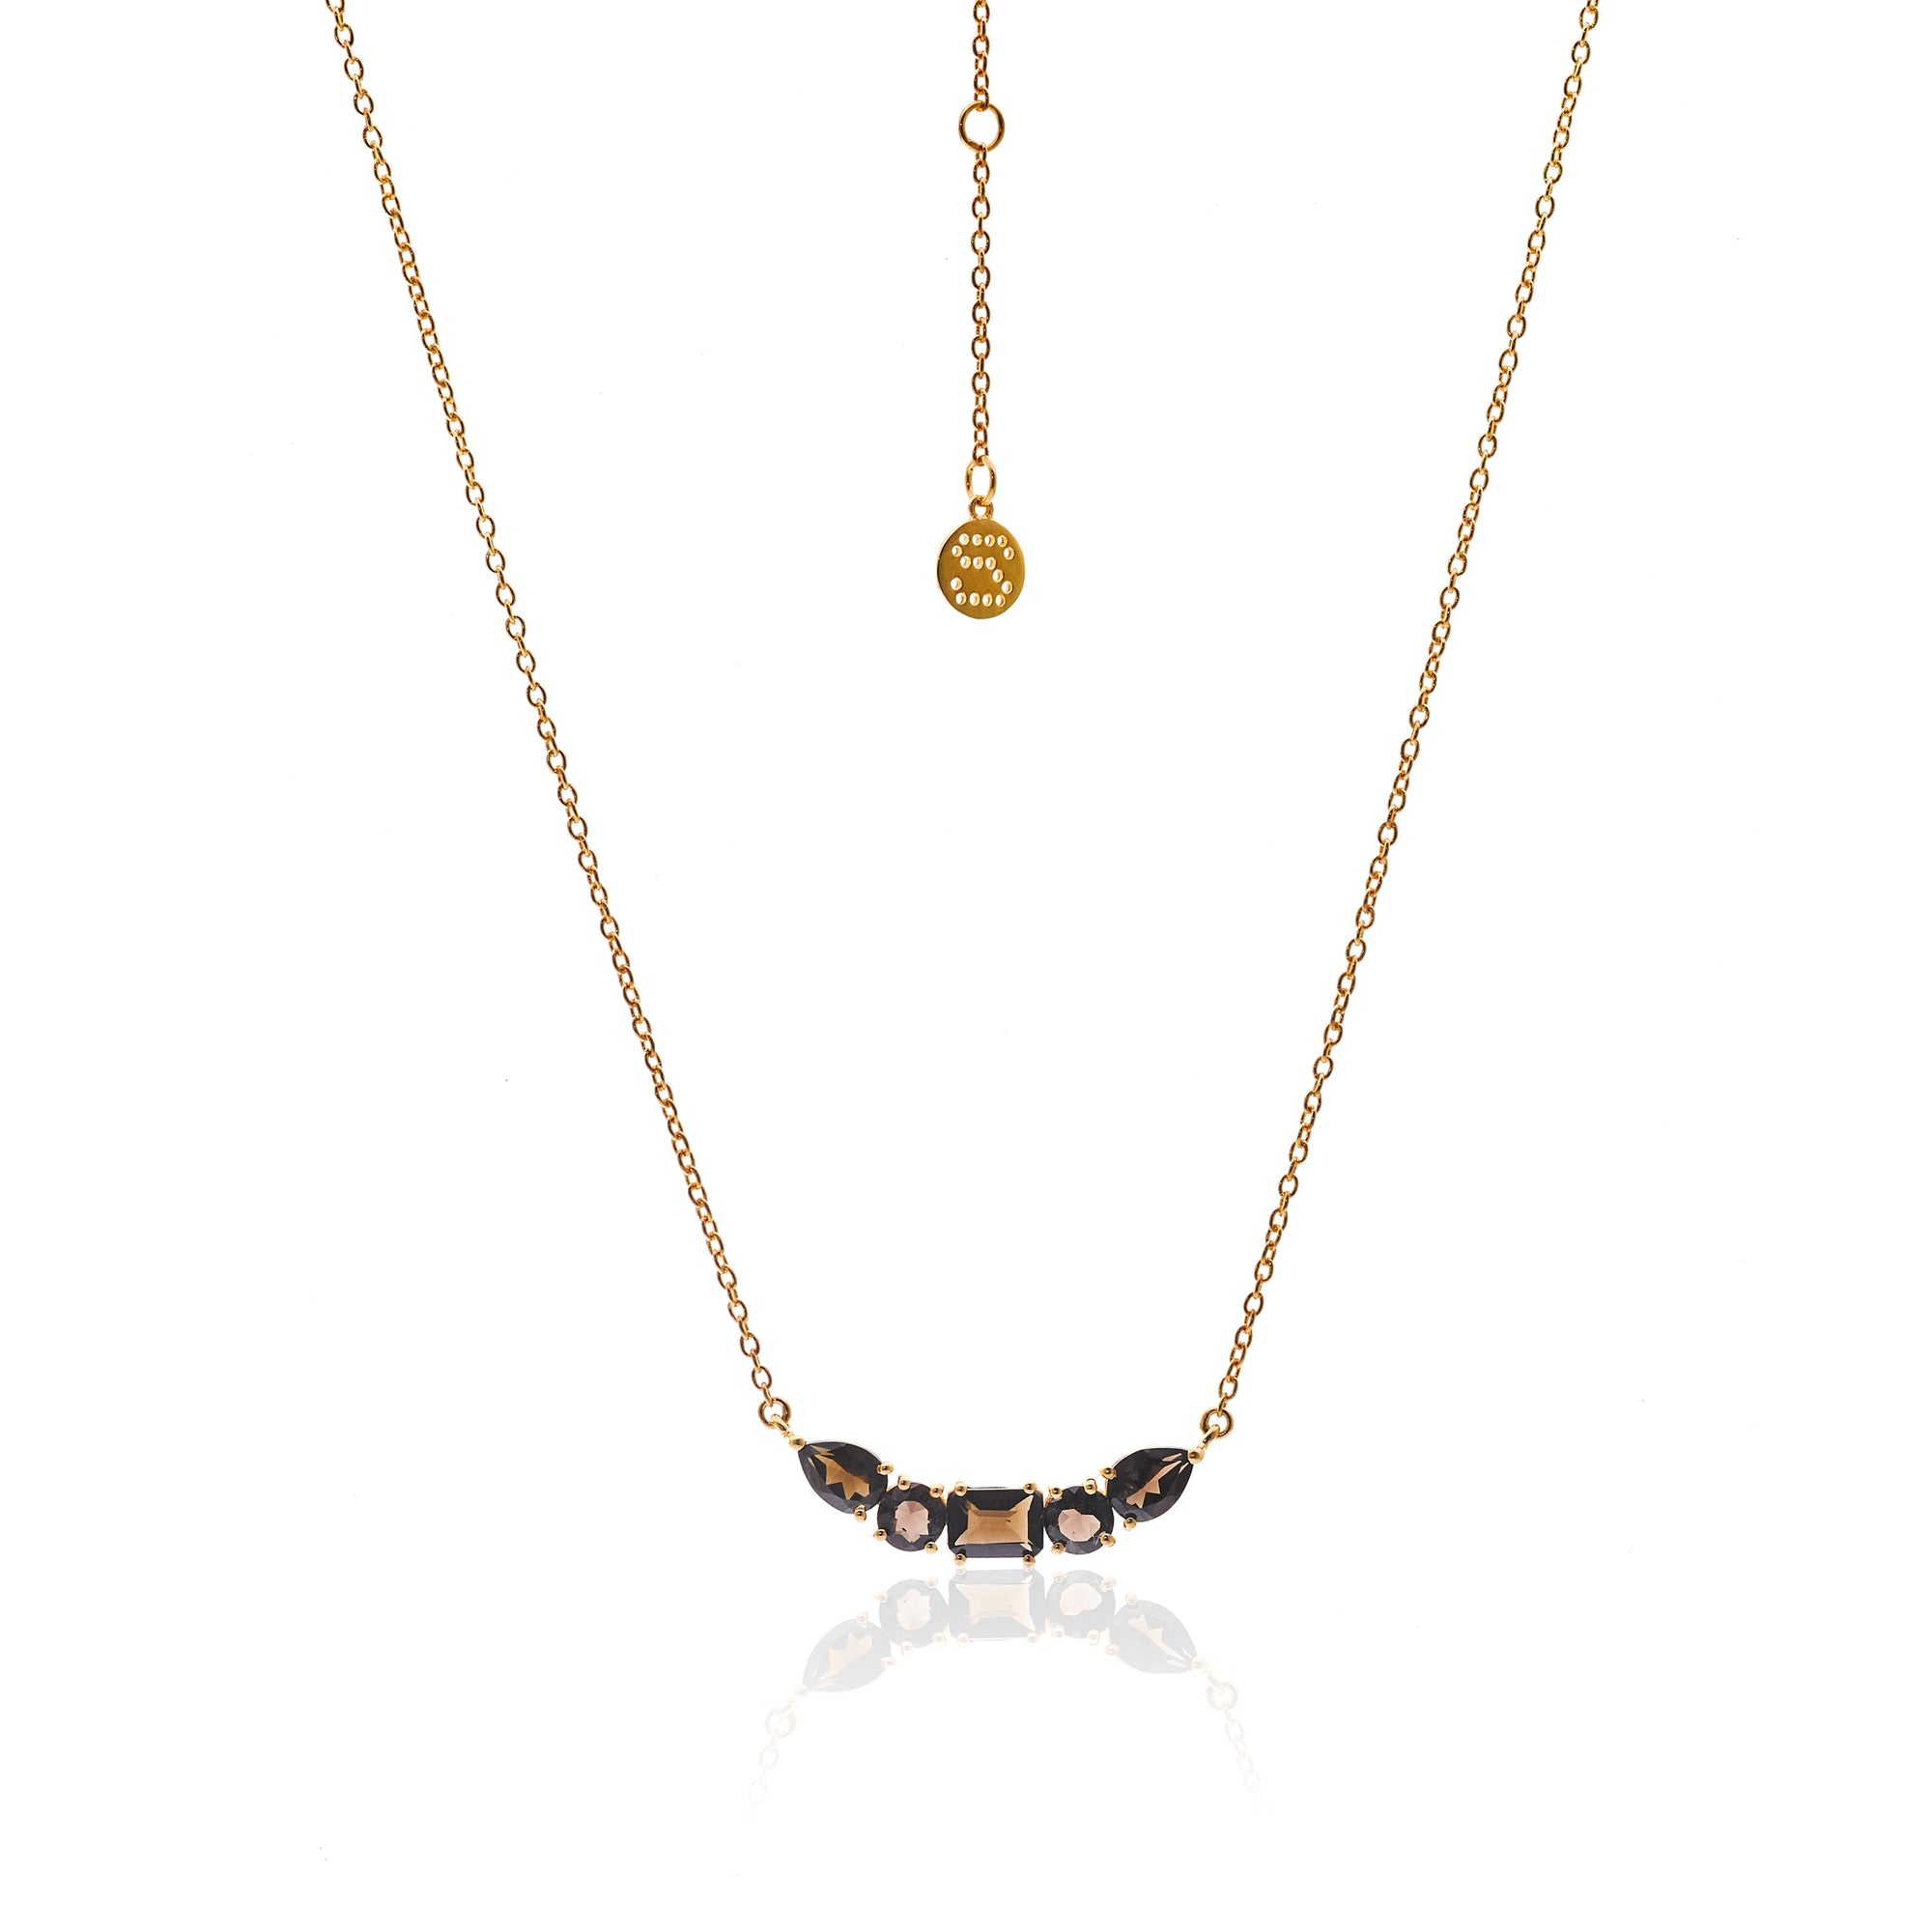 Amore / Smokey Quartz + Gold / Necklace